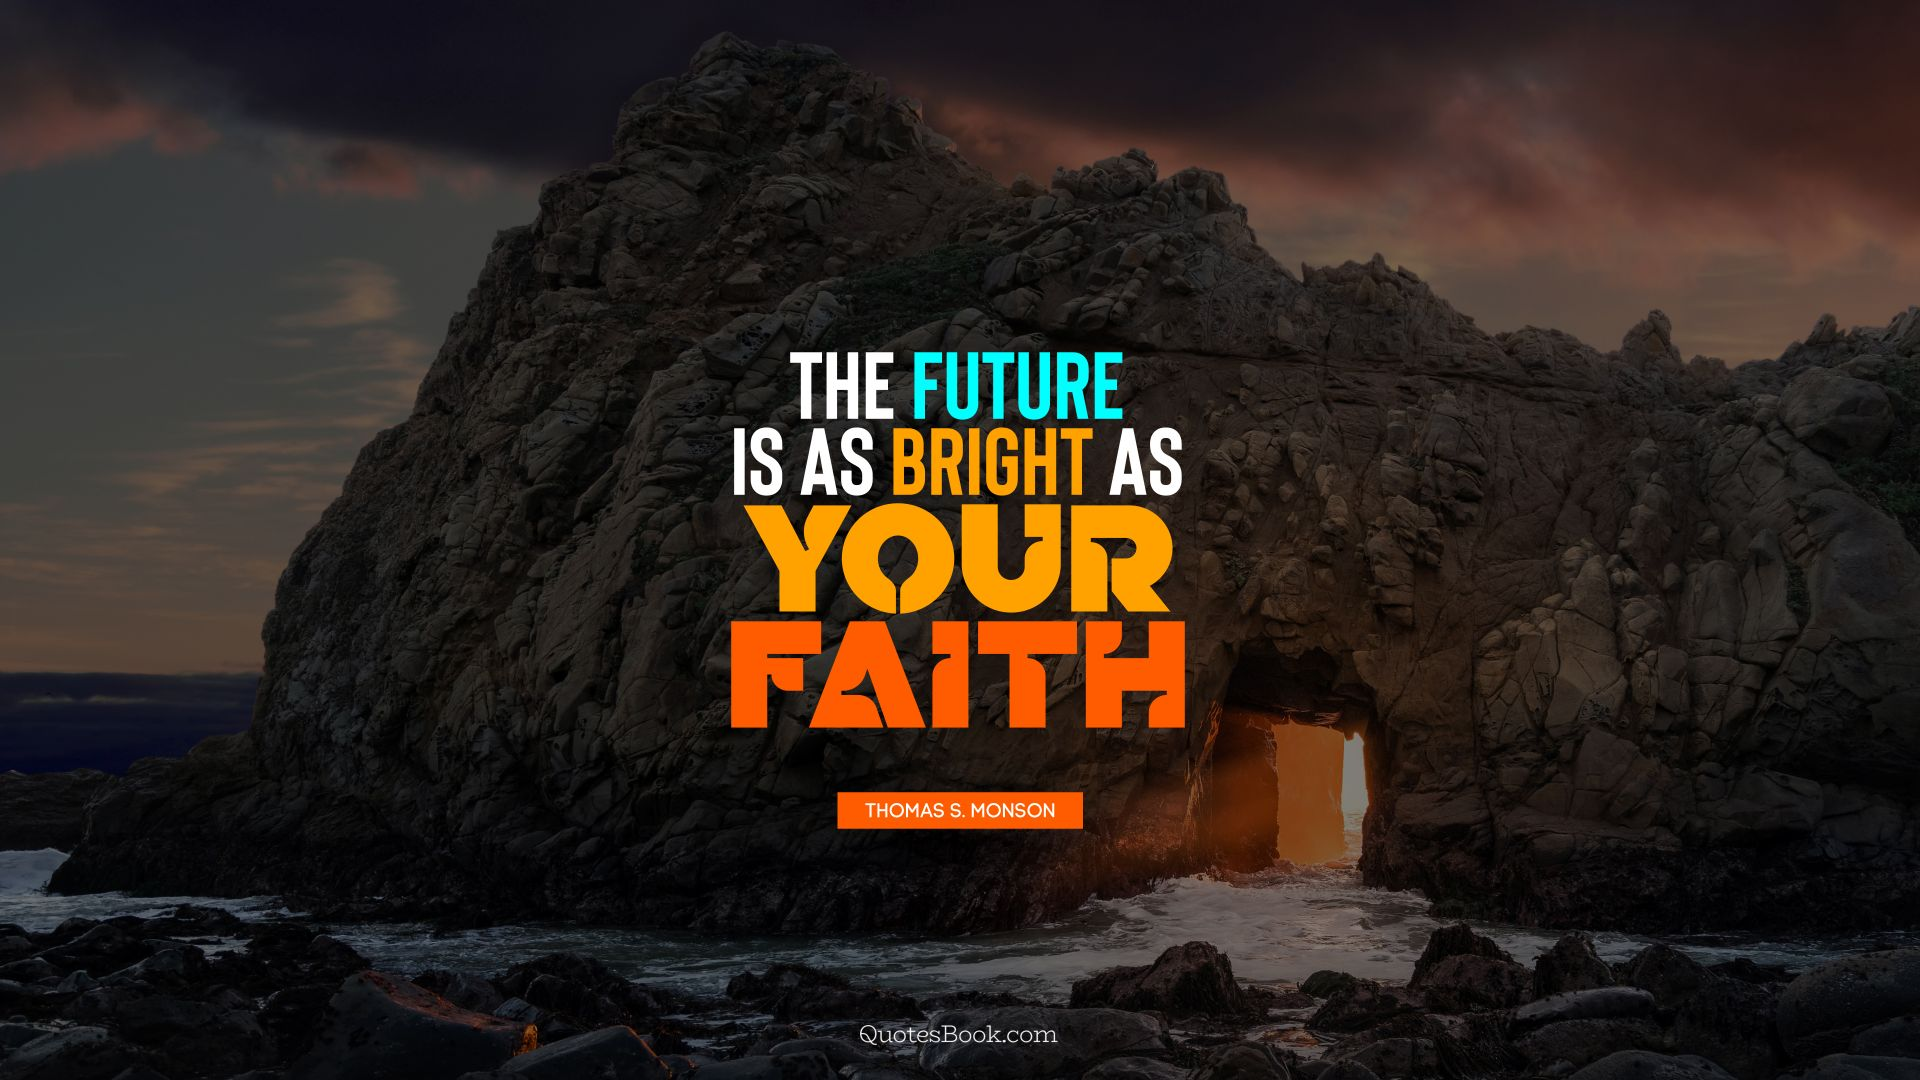 The future is as bright as your faith. - Quote by Thomas S. Monson